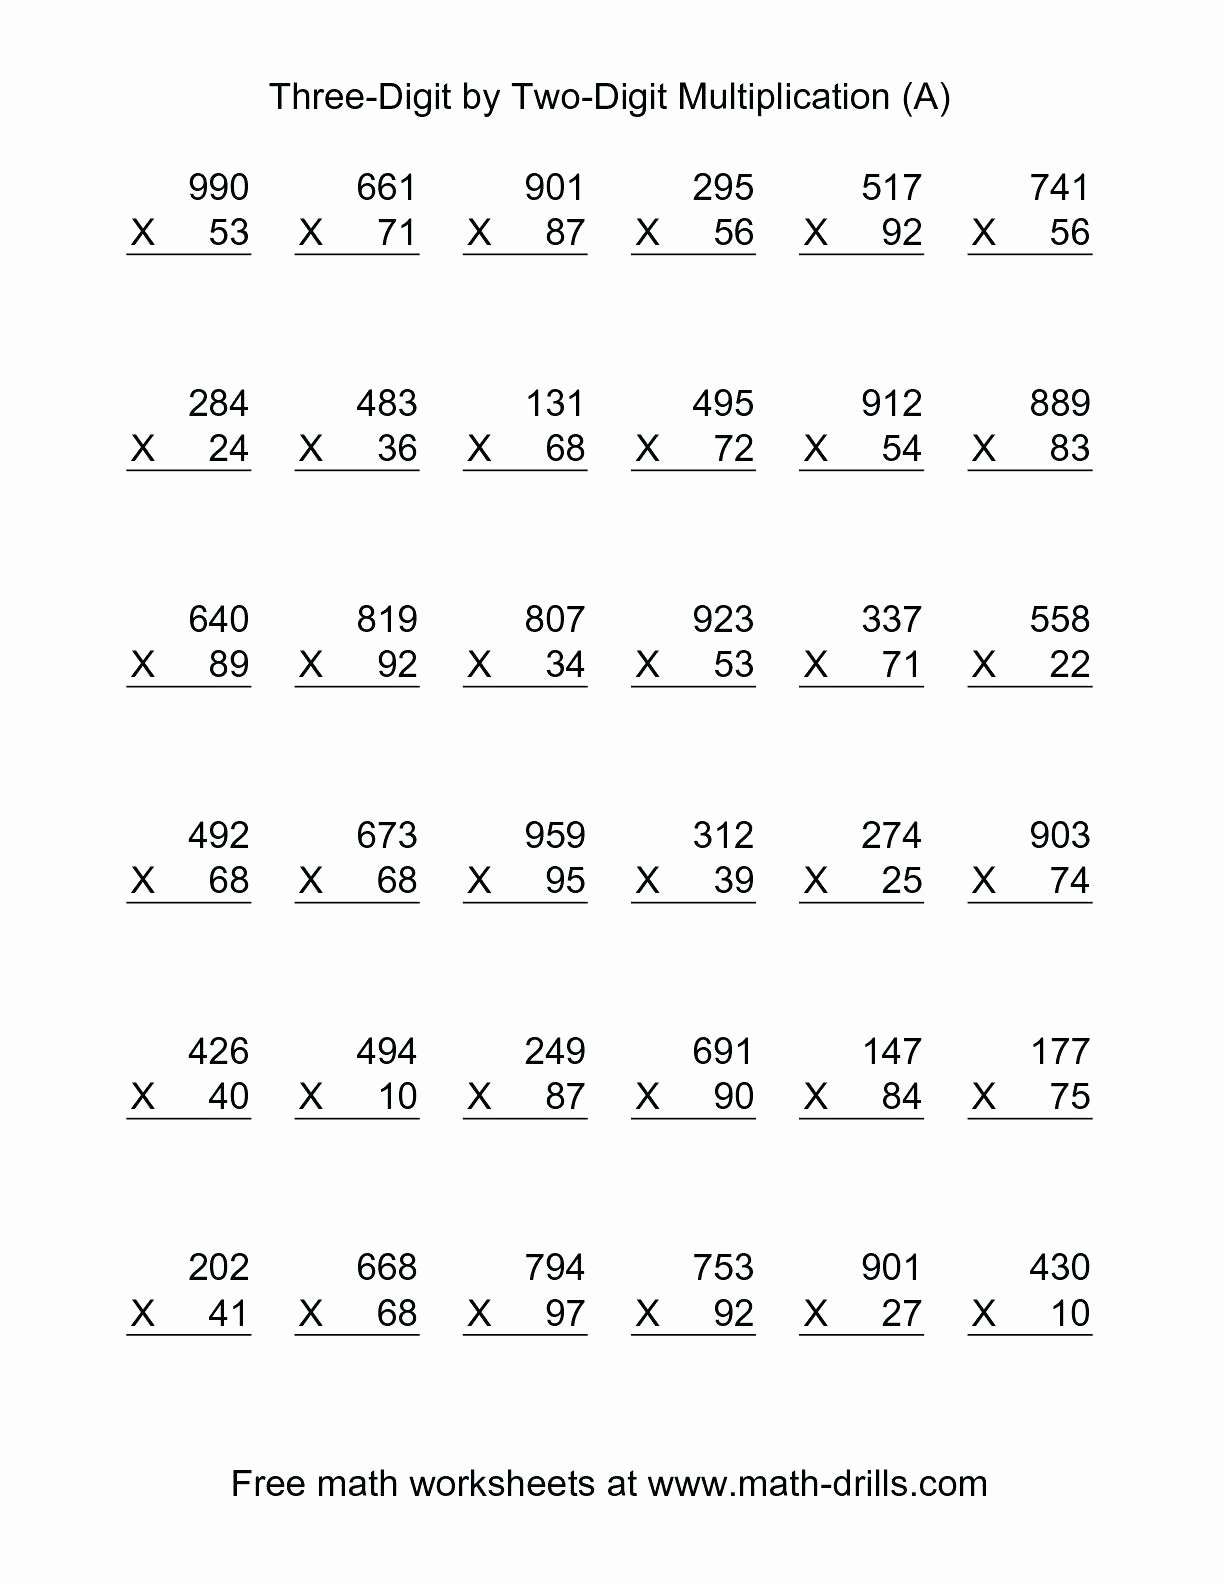 Print Multiplication Worksheets Inspirational 5th Grade Multiplication Worksheets for Printable 5th Grade